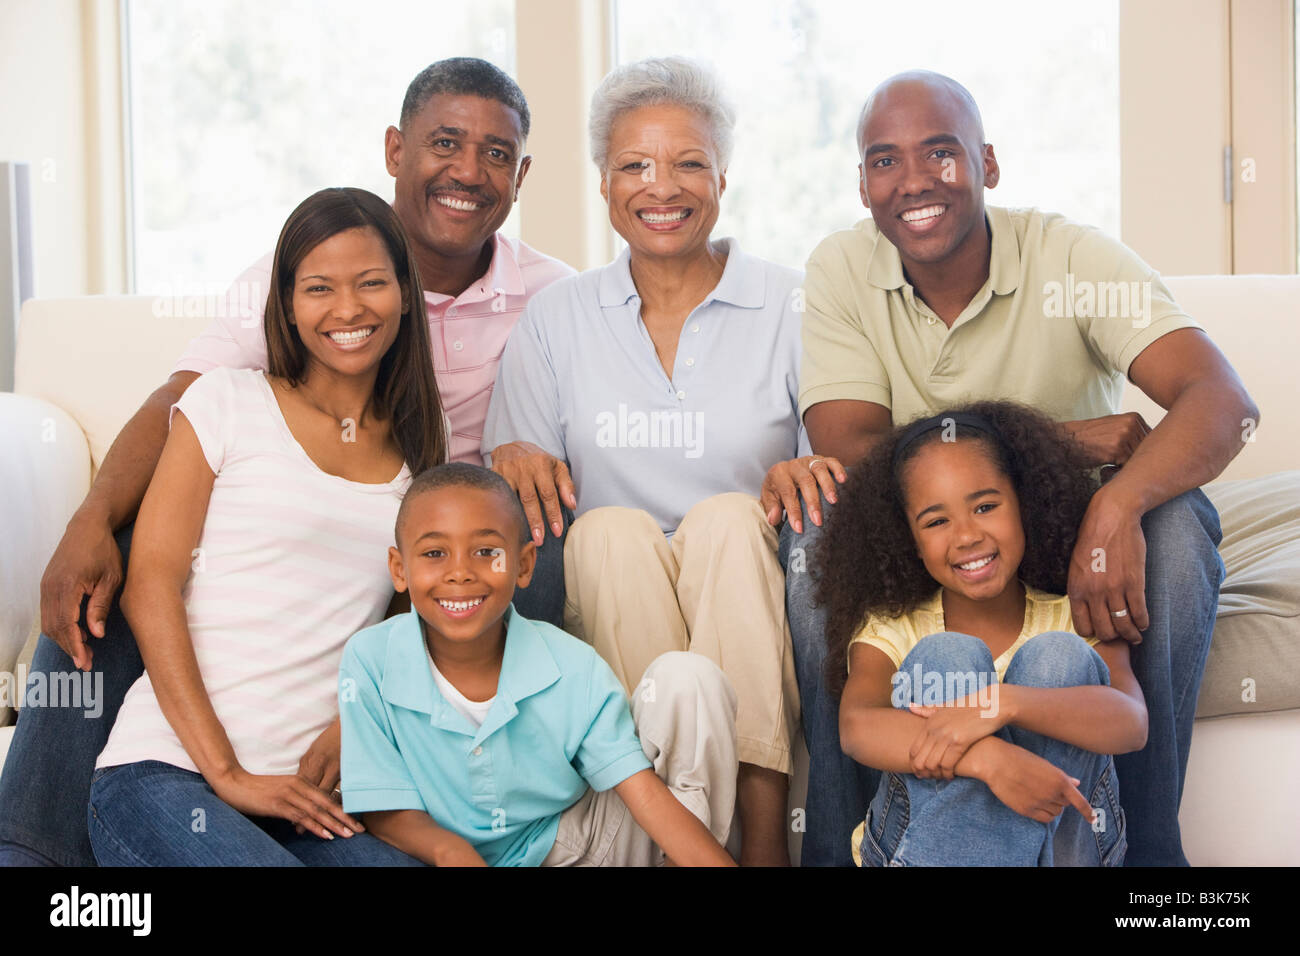 extended family in living room smiling stock photo 19477071 alamy